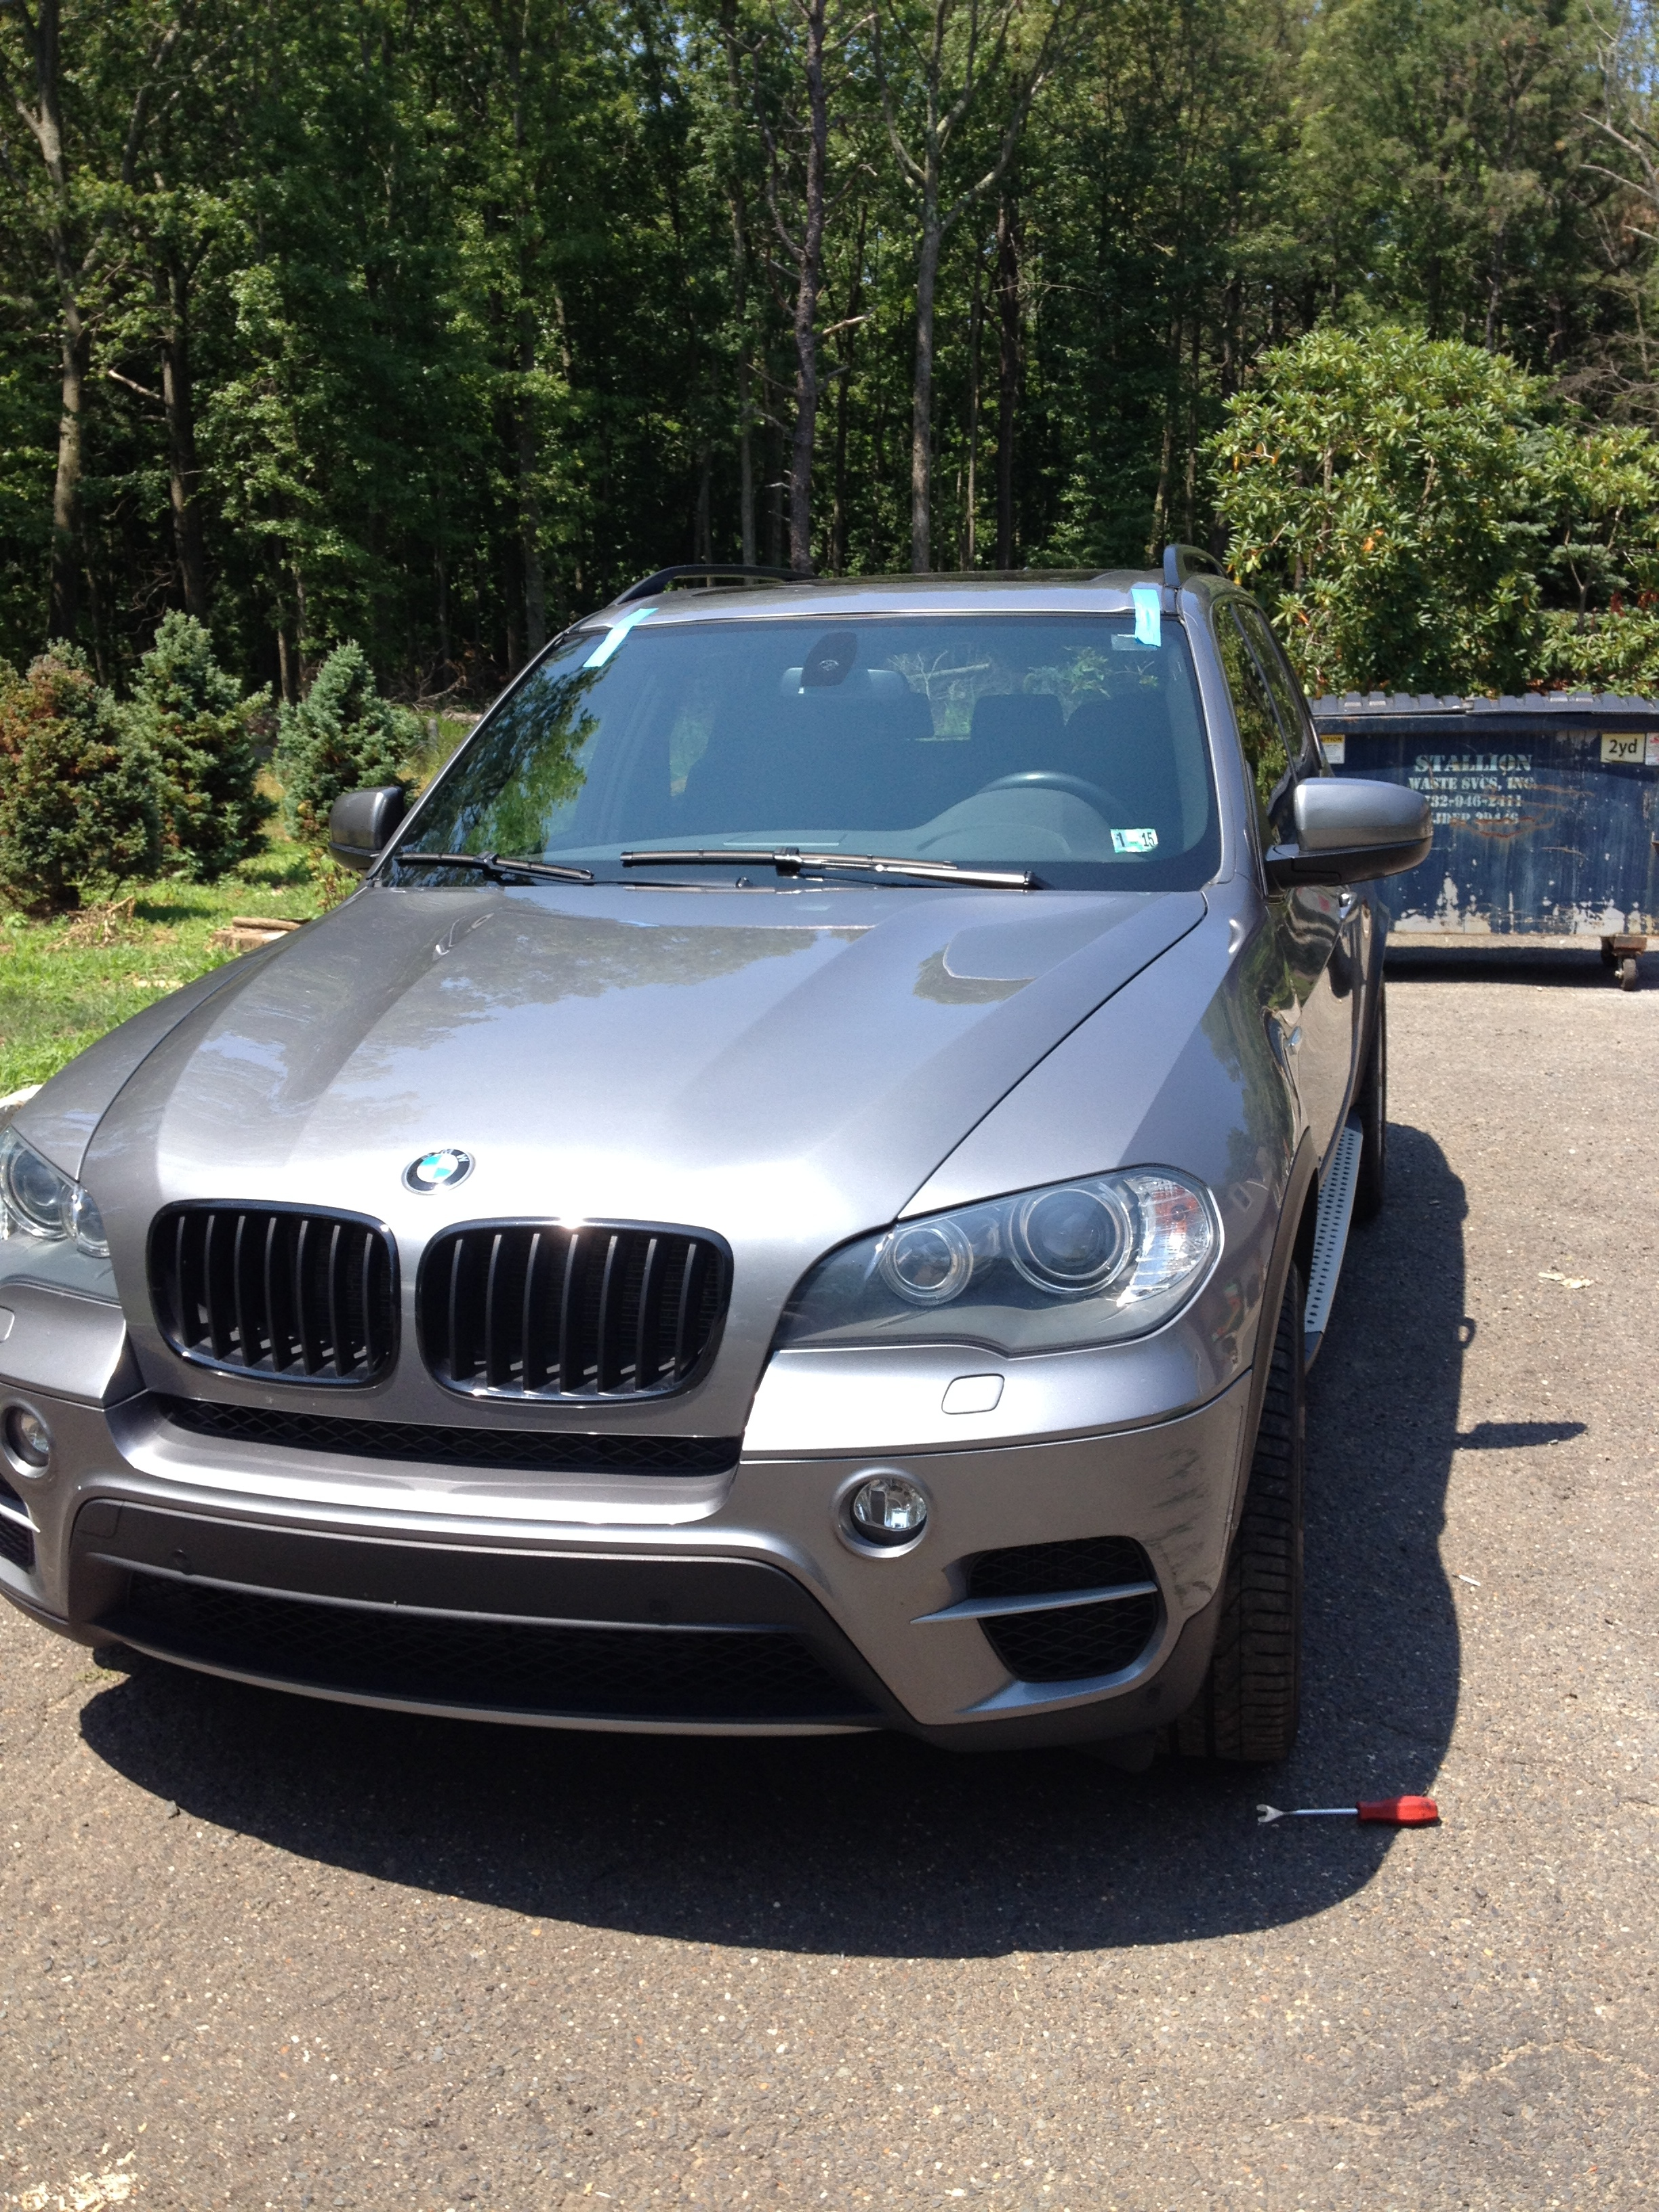 2012 BMW X5 install done Windshield Replacement Platinum Auto Glass NJ@platinumautoglassnj